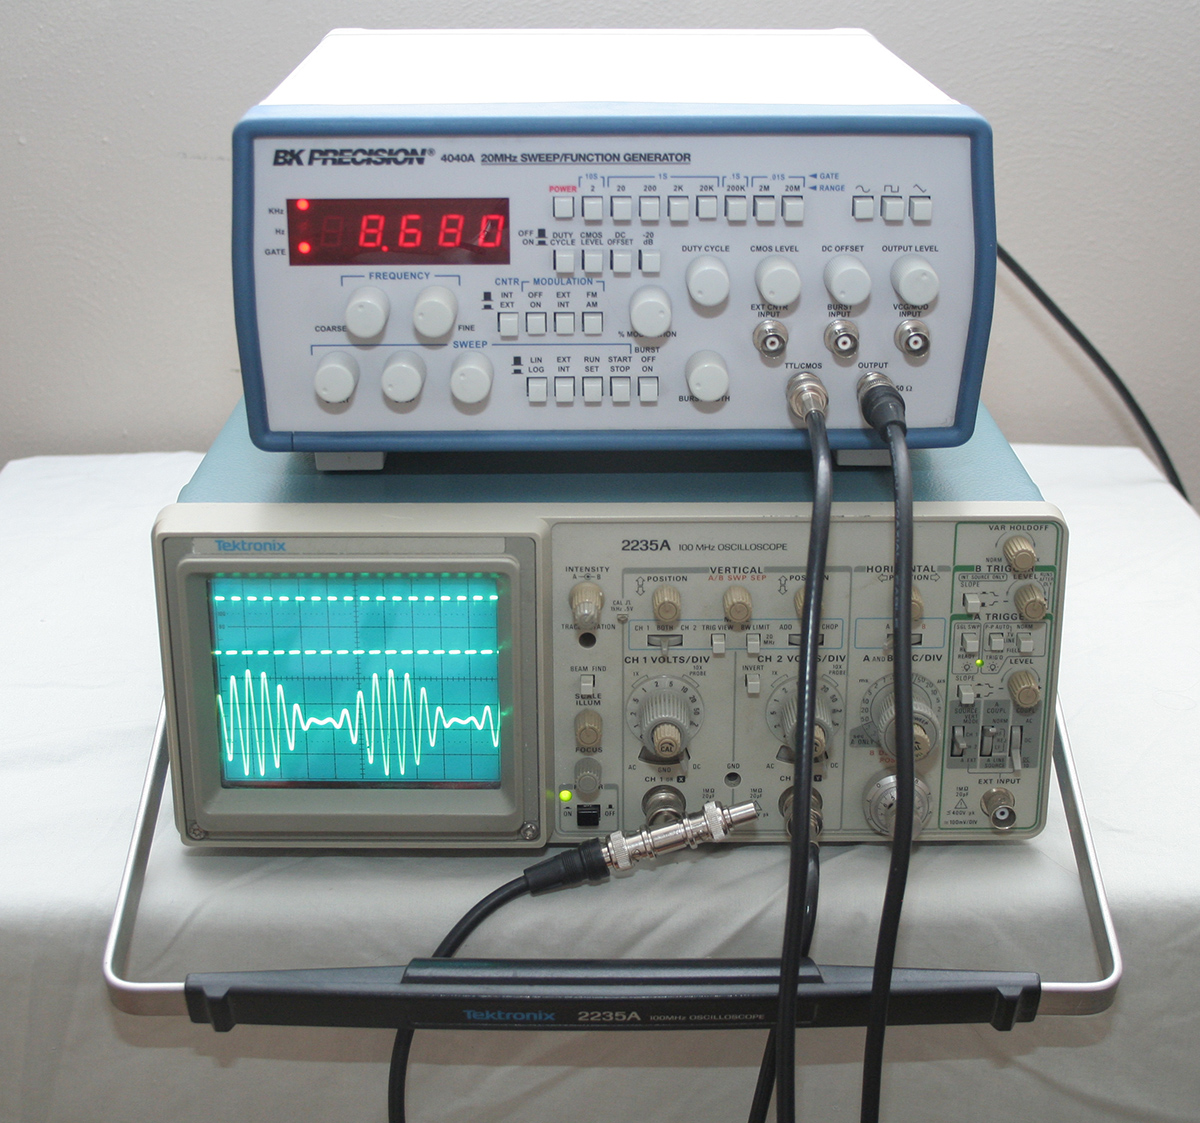 Fs Bk Precision 4040a 20mhz Sweep Function Generator Us Click Image For Larger Version Name Operation Views 1 Size 6348